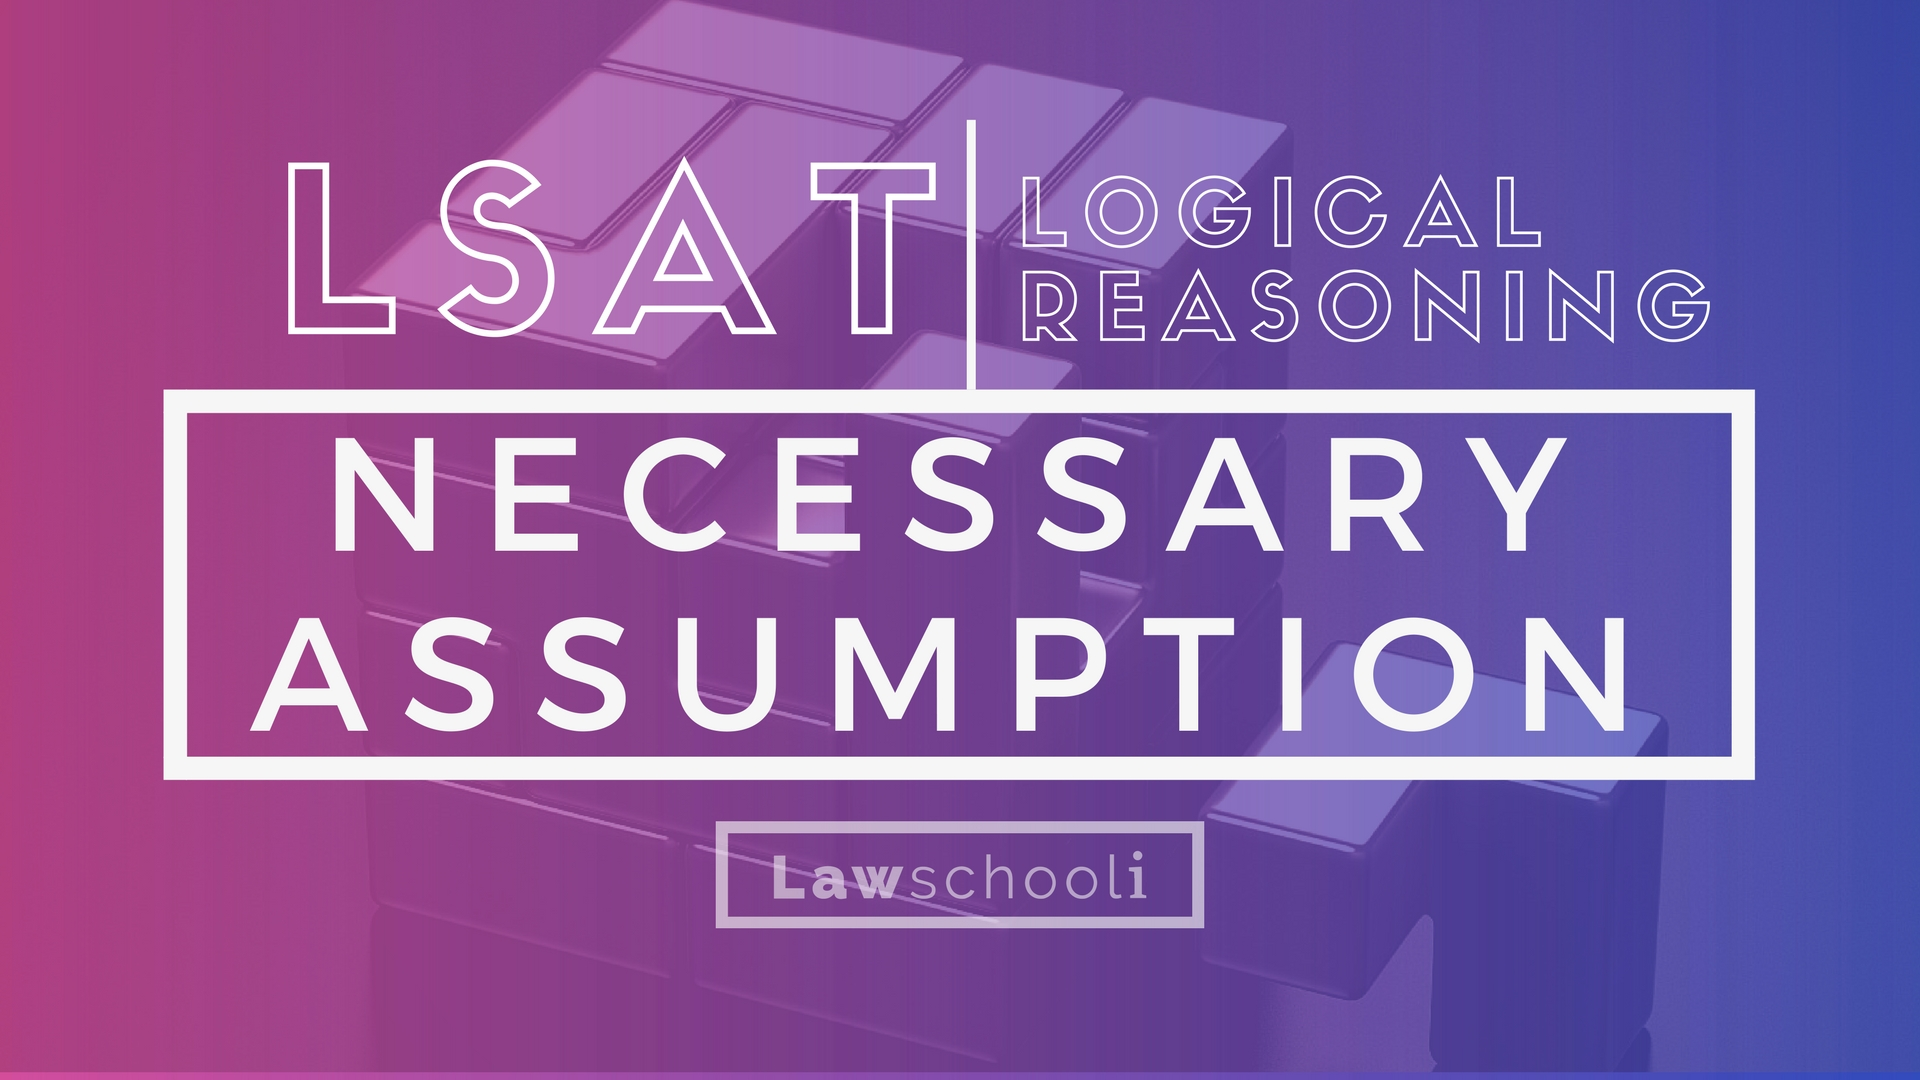 How to master lsat logical reasoning necessary assumption questions how to master lsat logical reasoning necessary assumption questions malvernweather Images